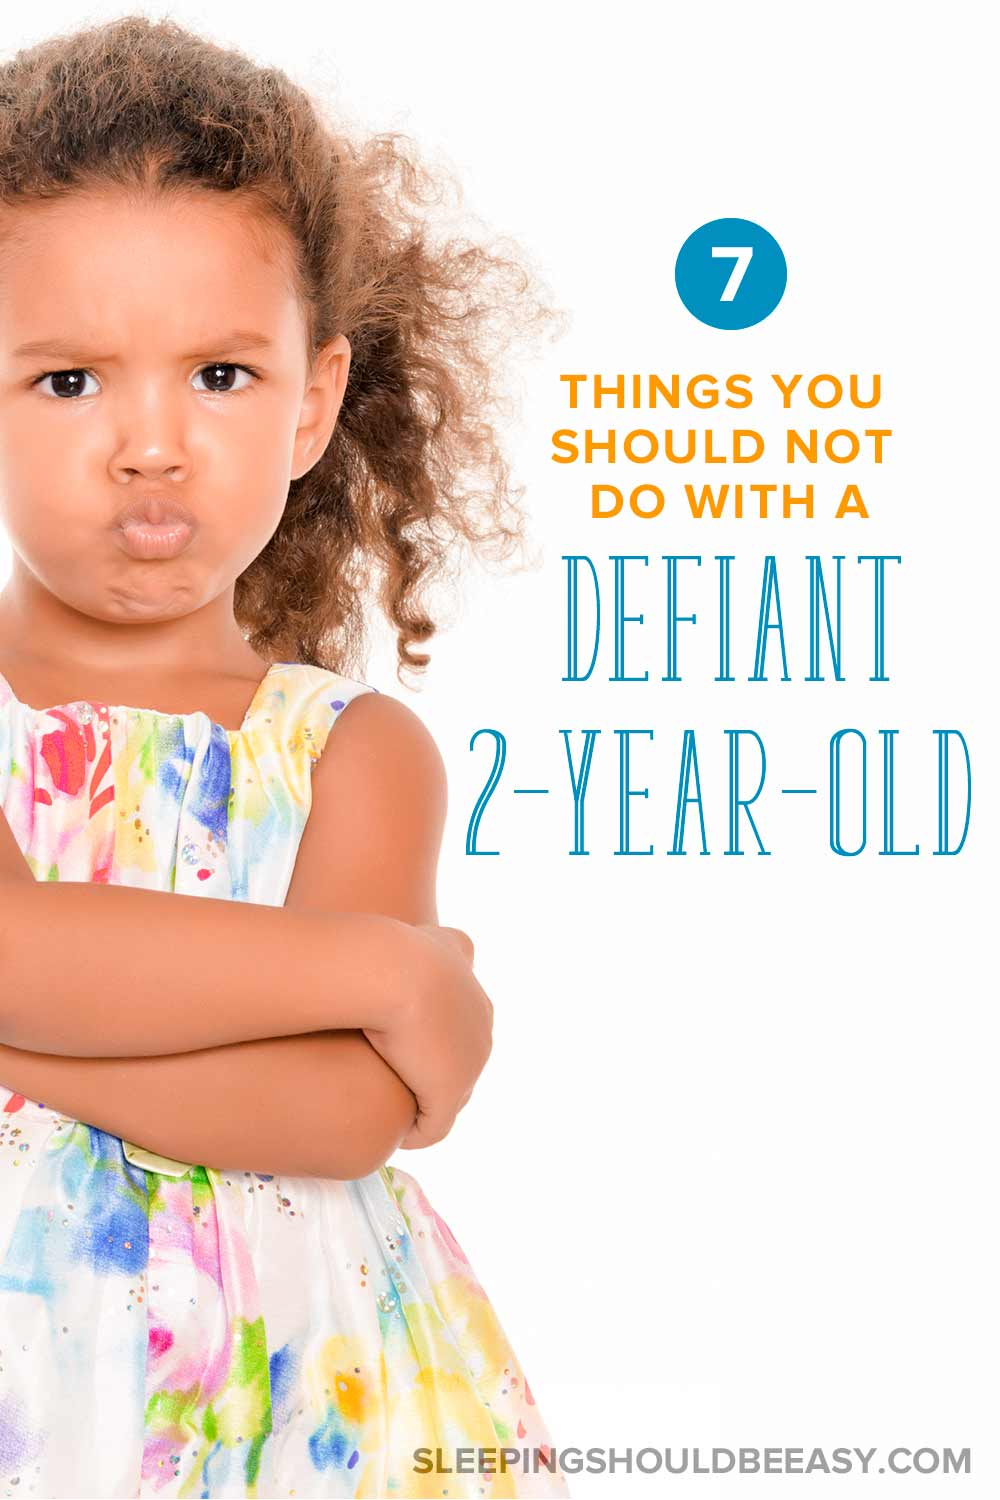 7 things you shouldd not do with a defiant 2 year old